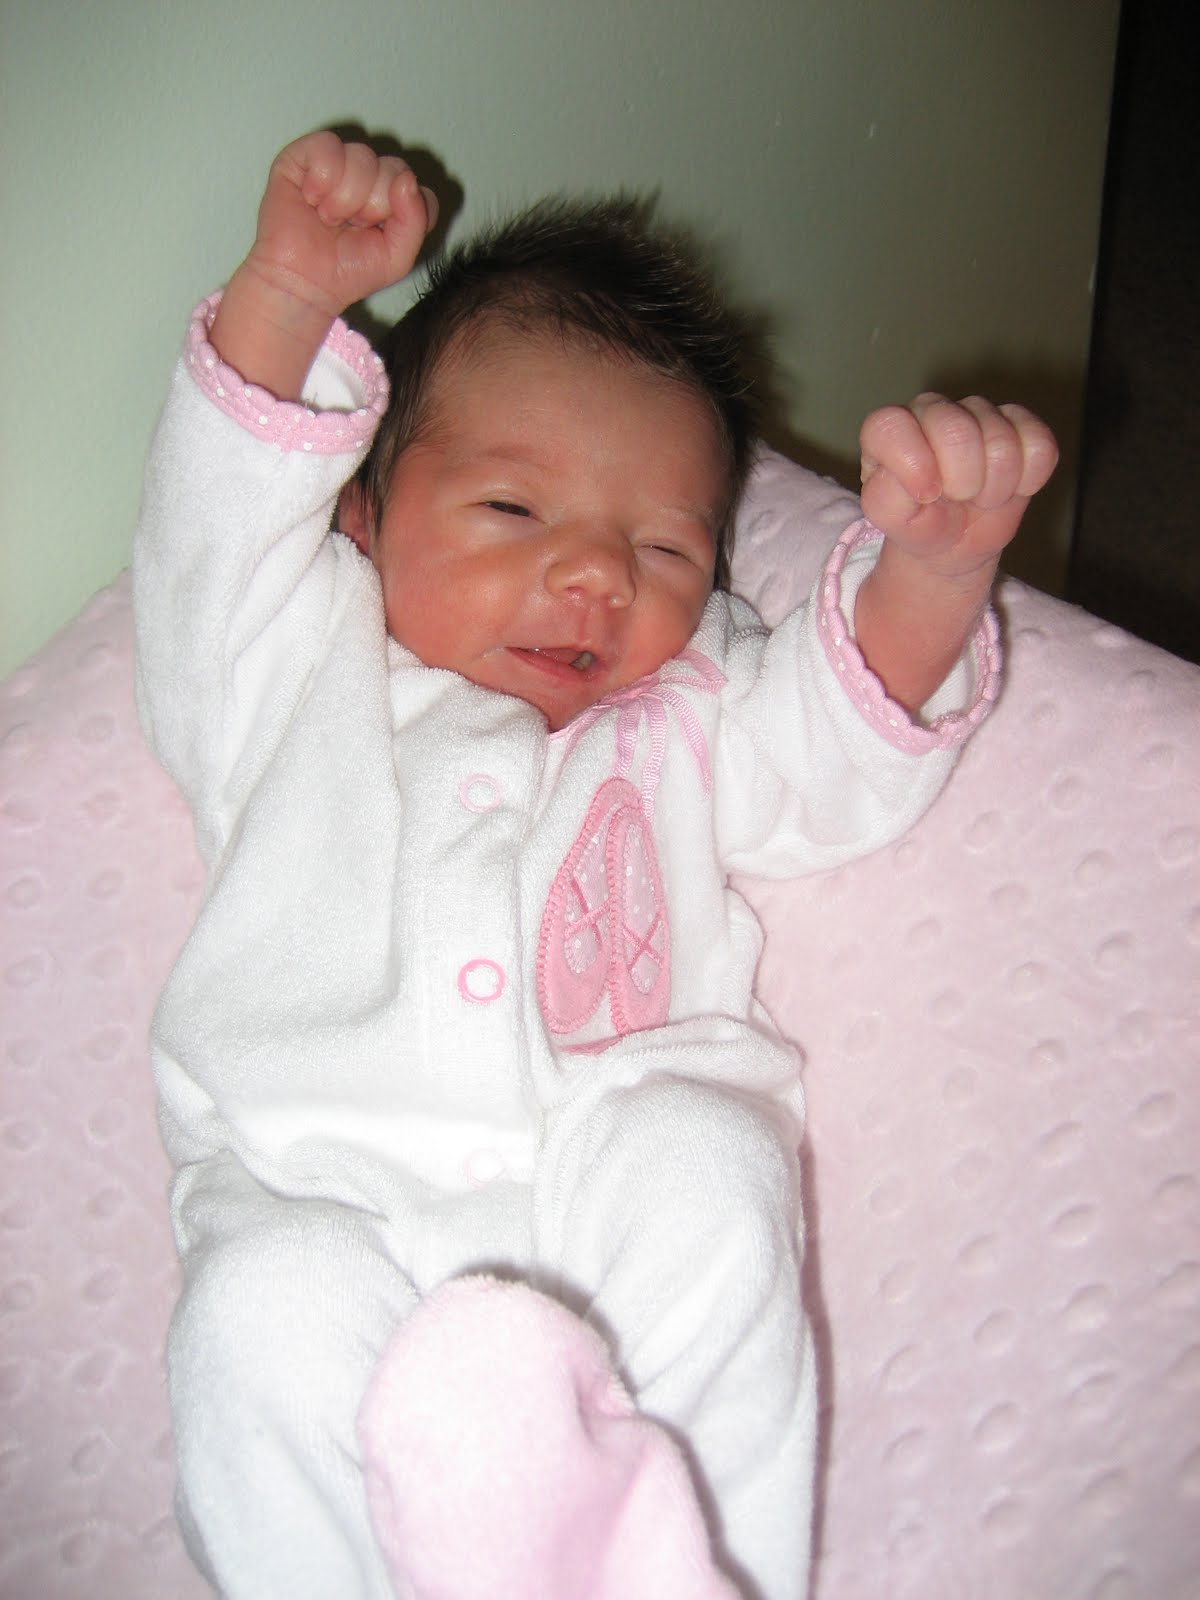 loopie lunds our baby girl is 1 week old